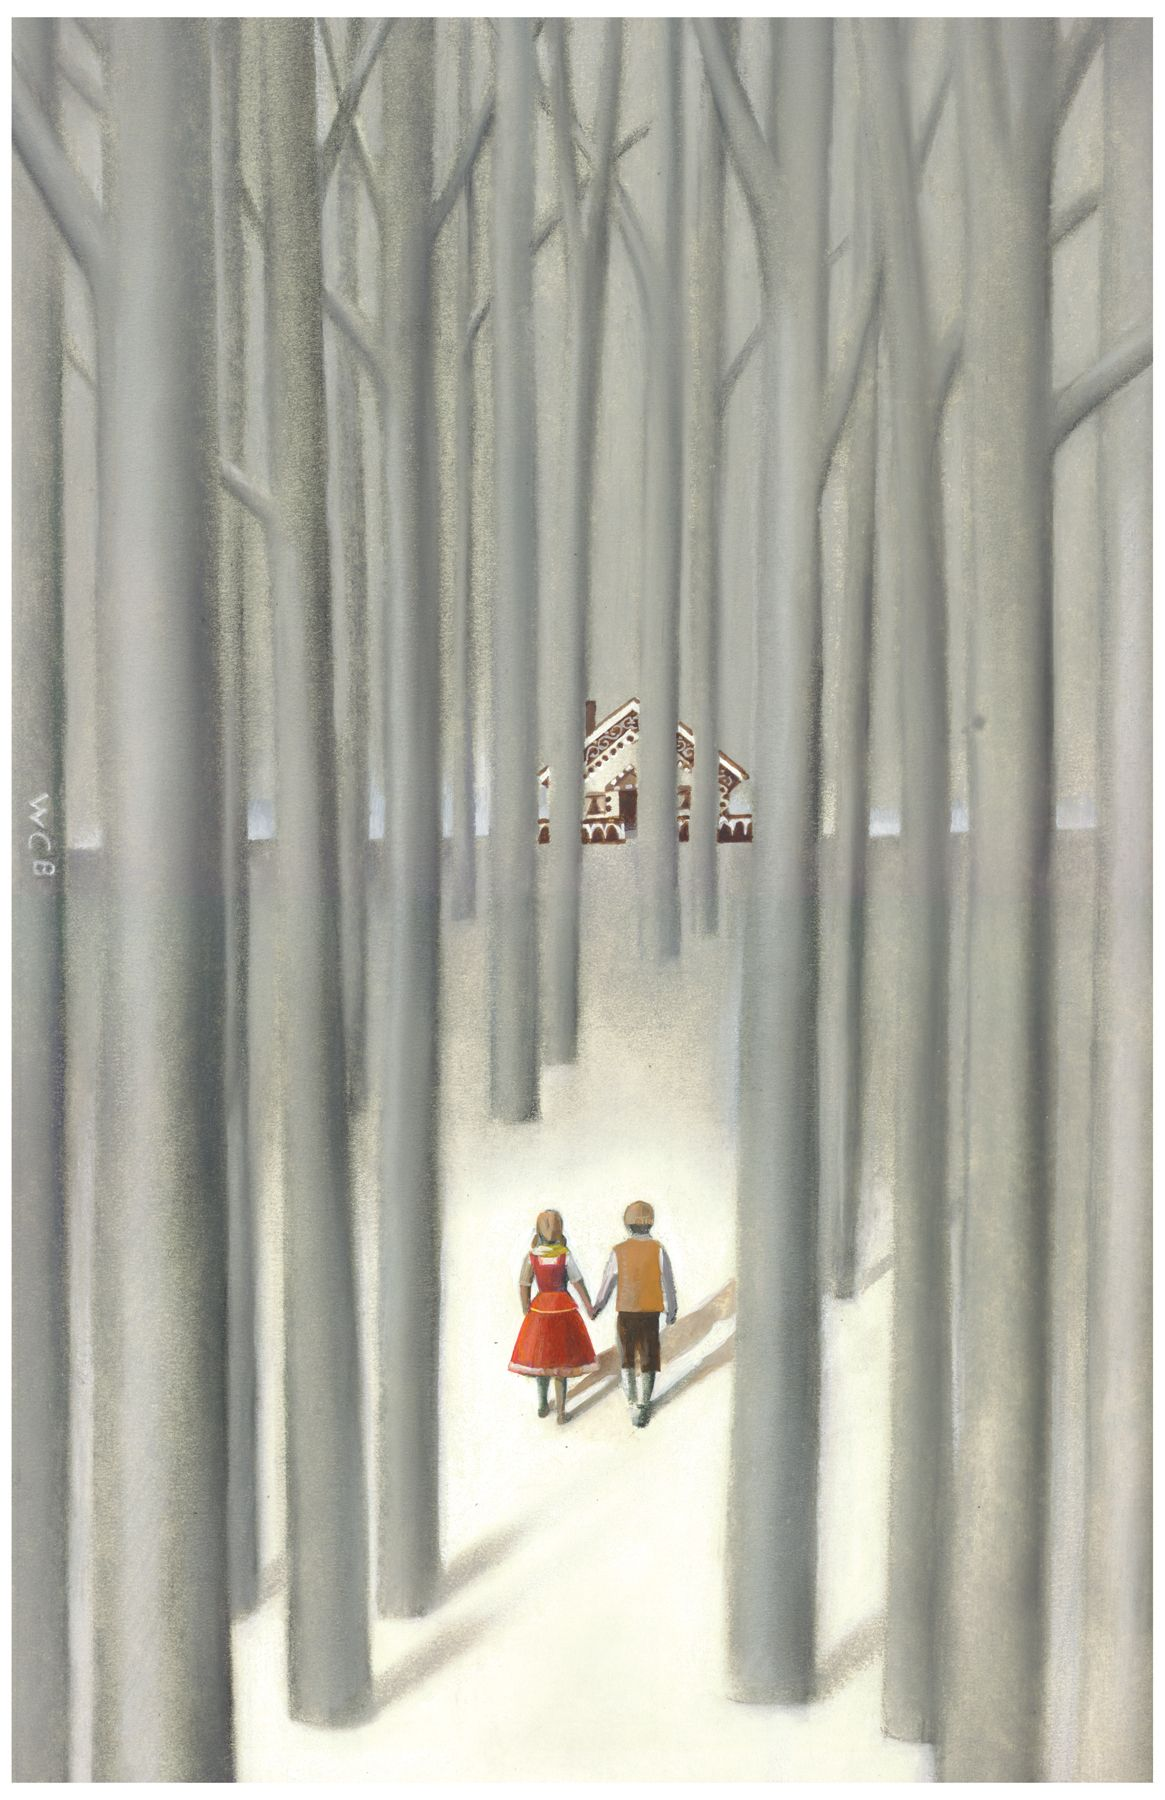 Hansel and Gretel - play poster from the University of Michigan, Bill Burgard